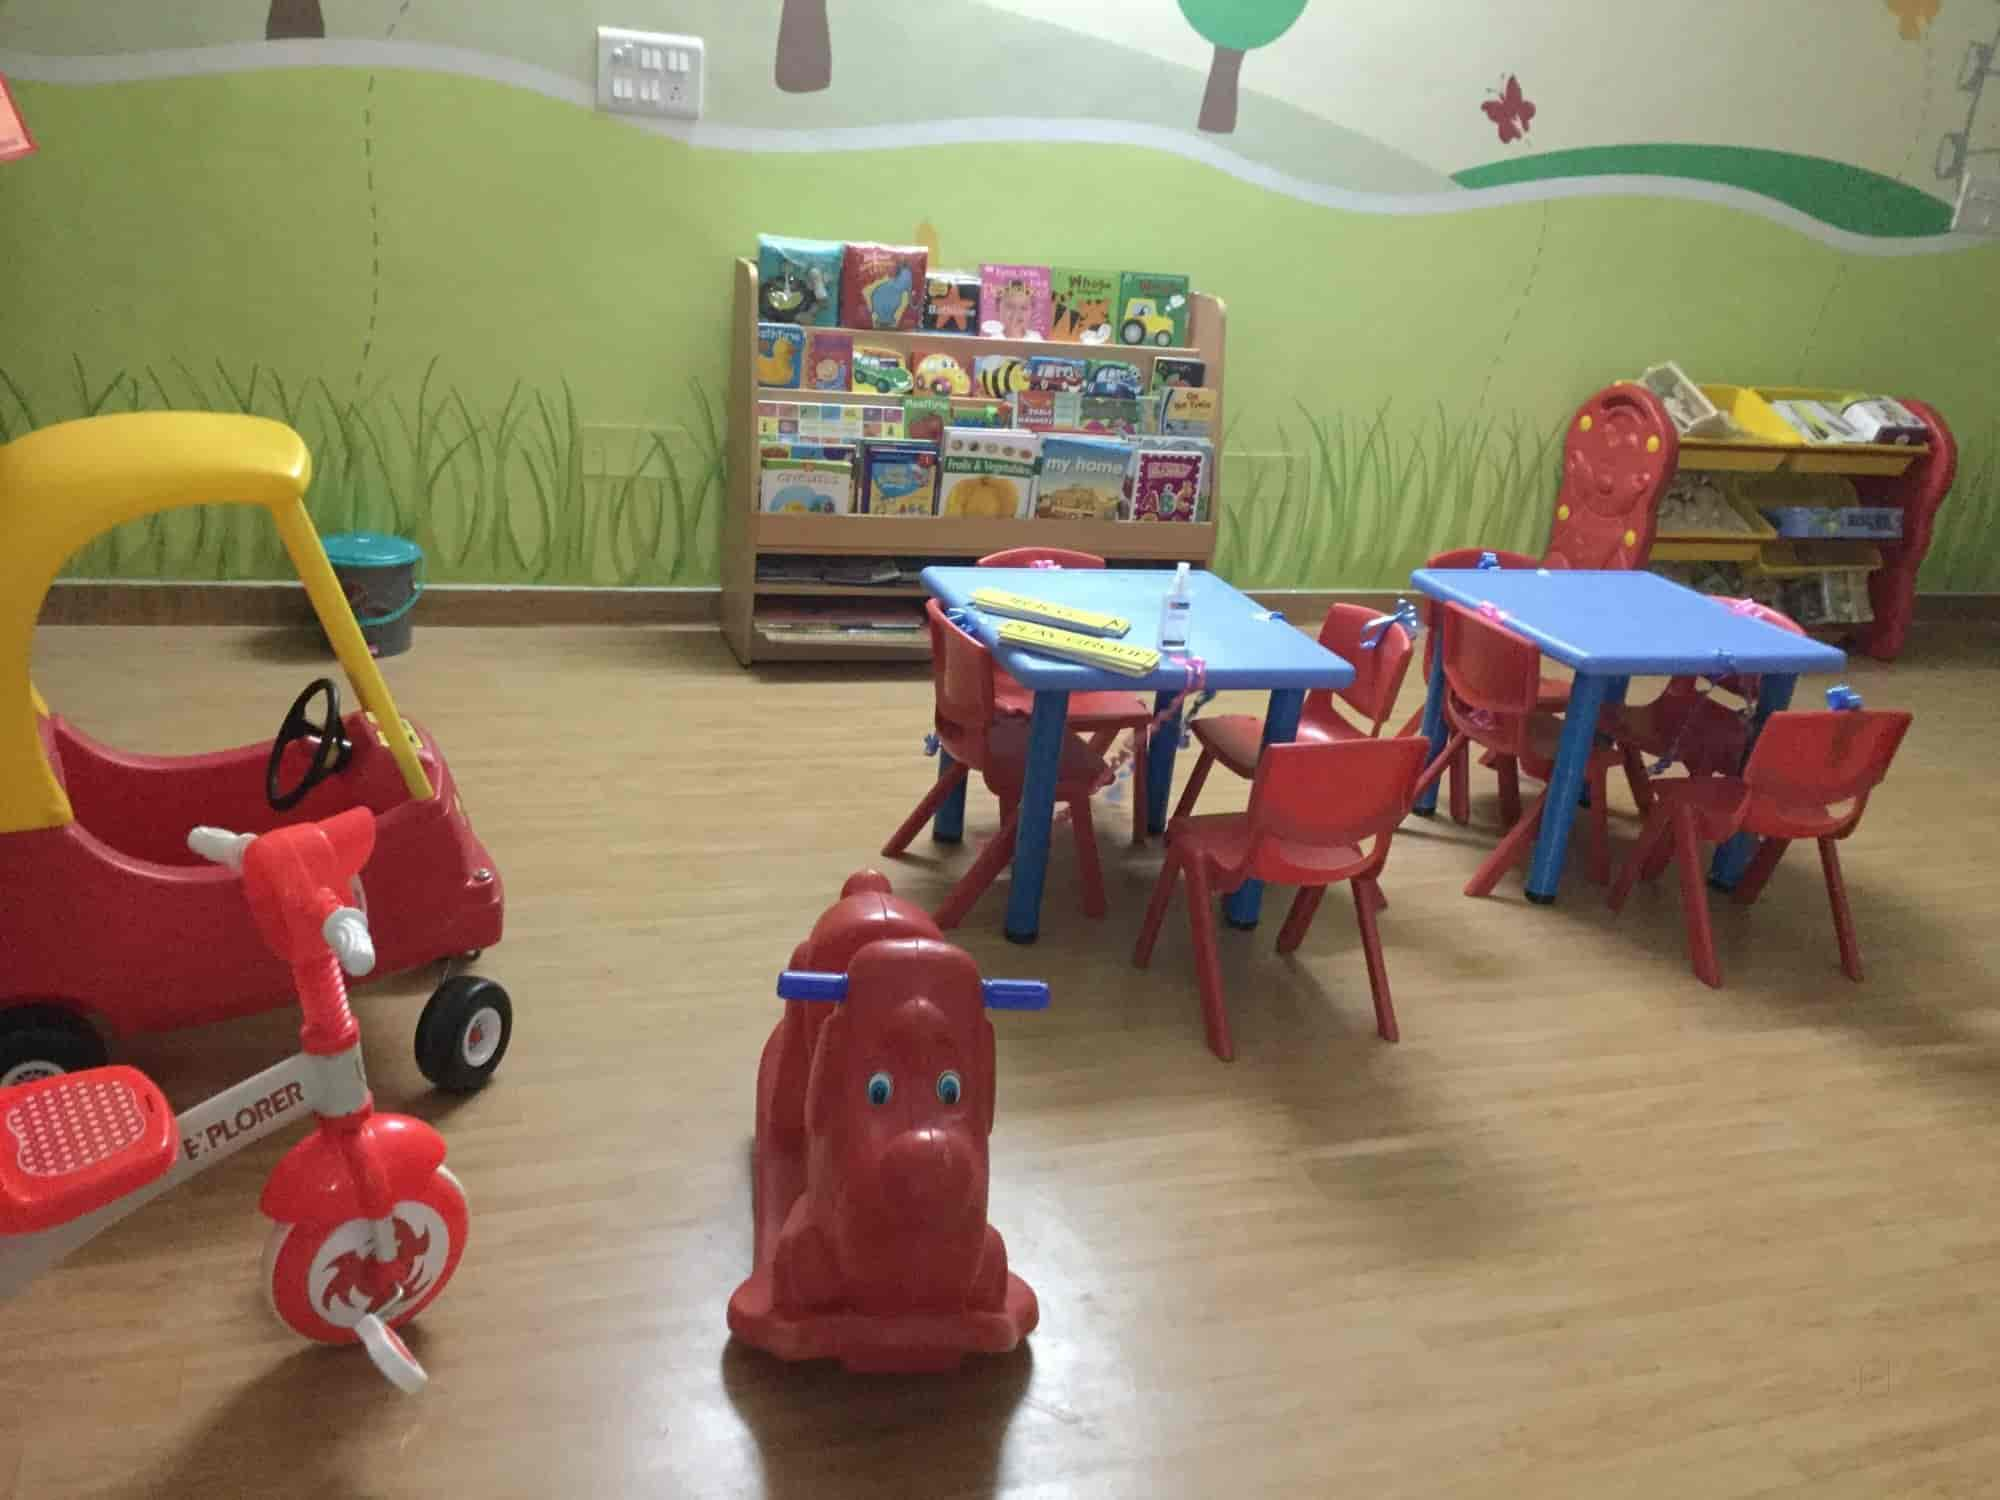 Your Guide To Finding Good Playschools In India